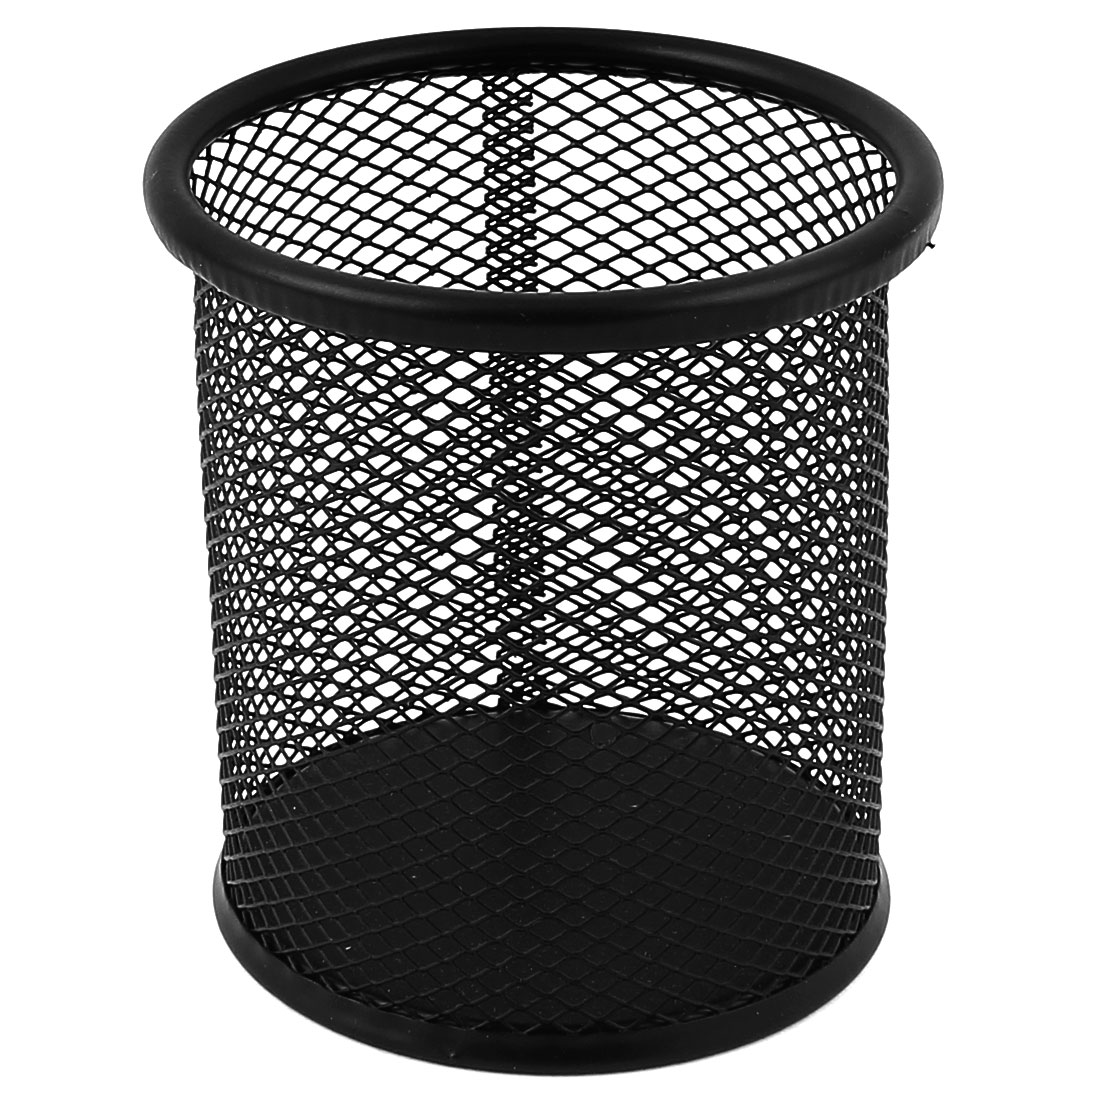 Office Space Supply Black Metal Mesh Cylindrical Pen Pencil Cup Desk Organizer Holder Container